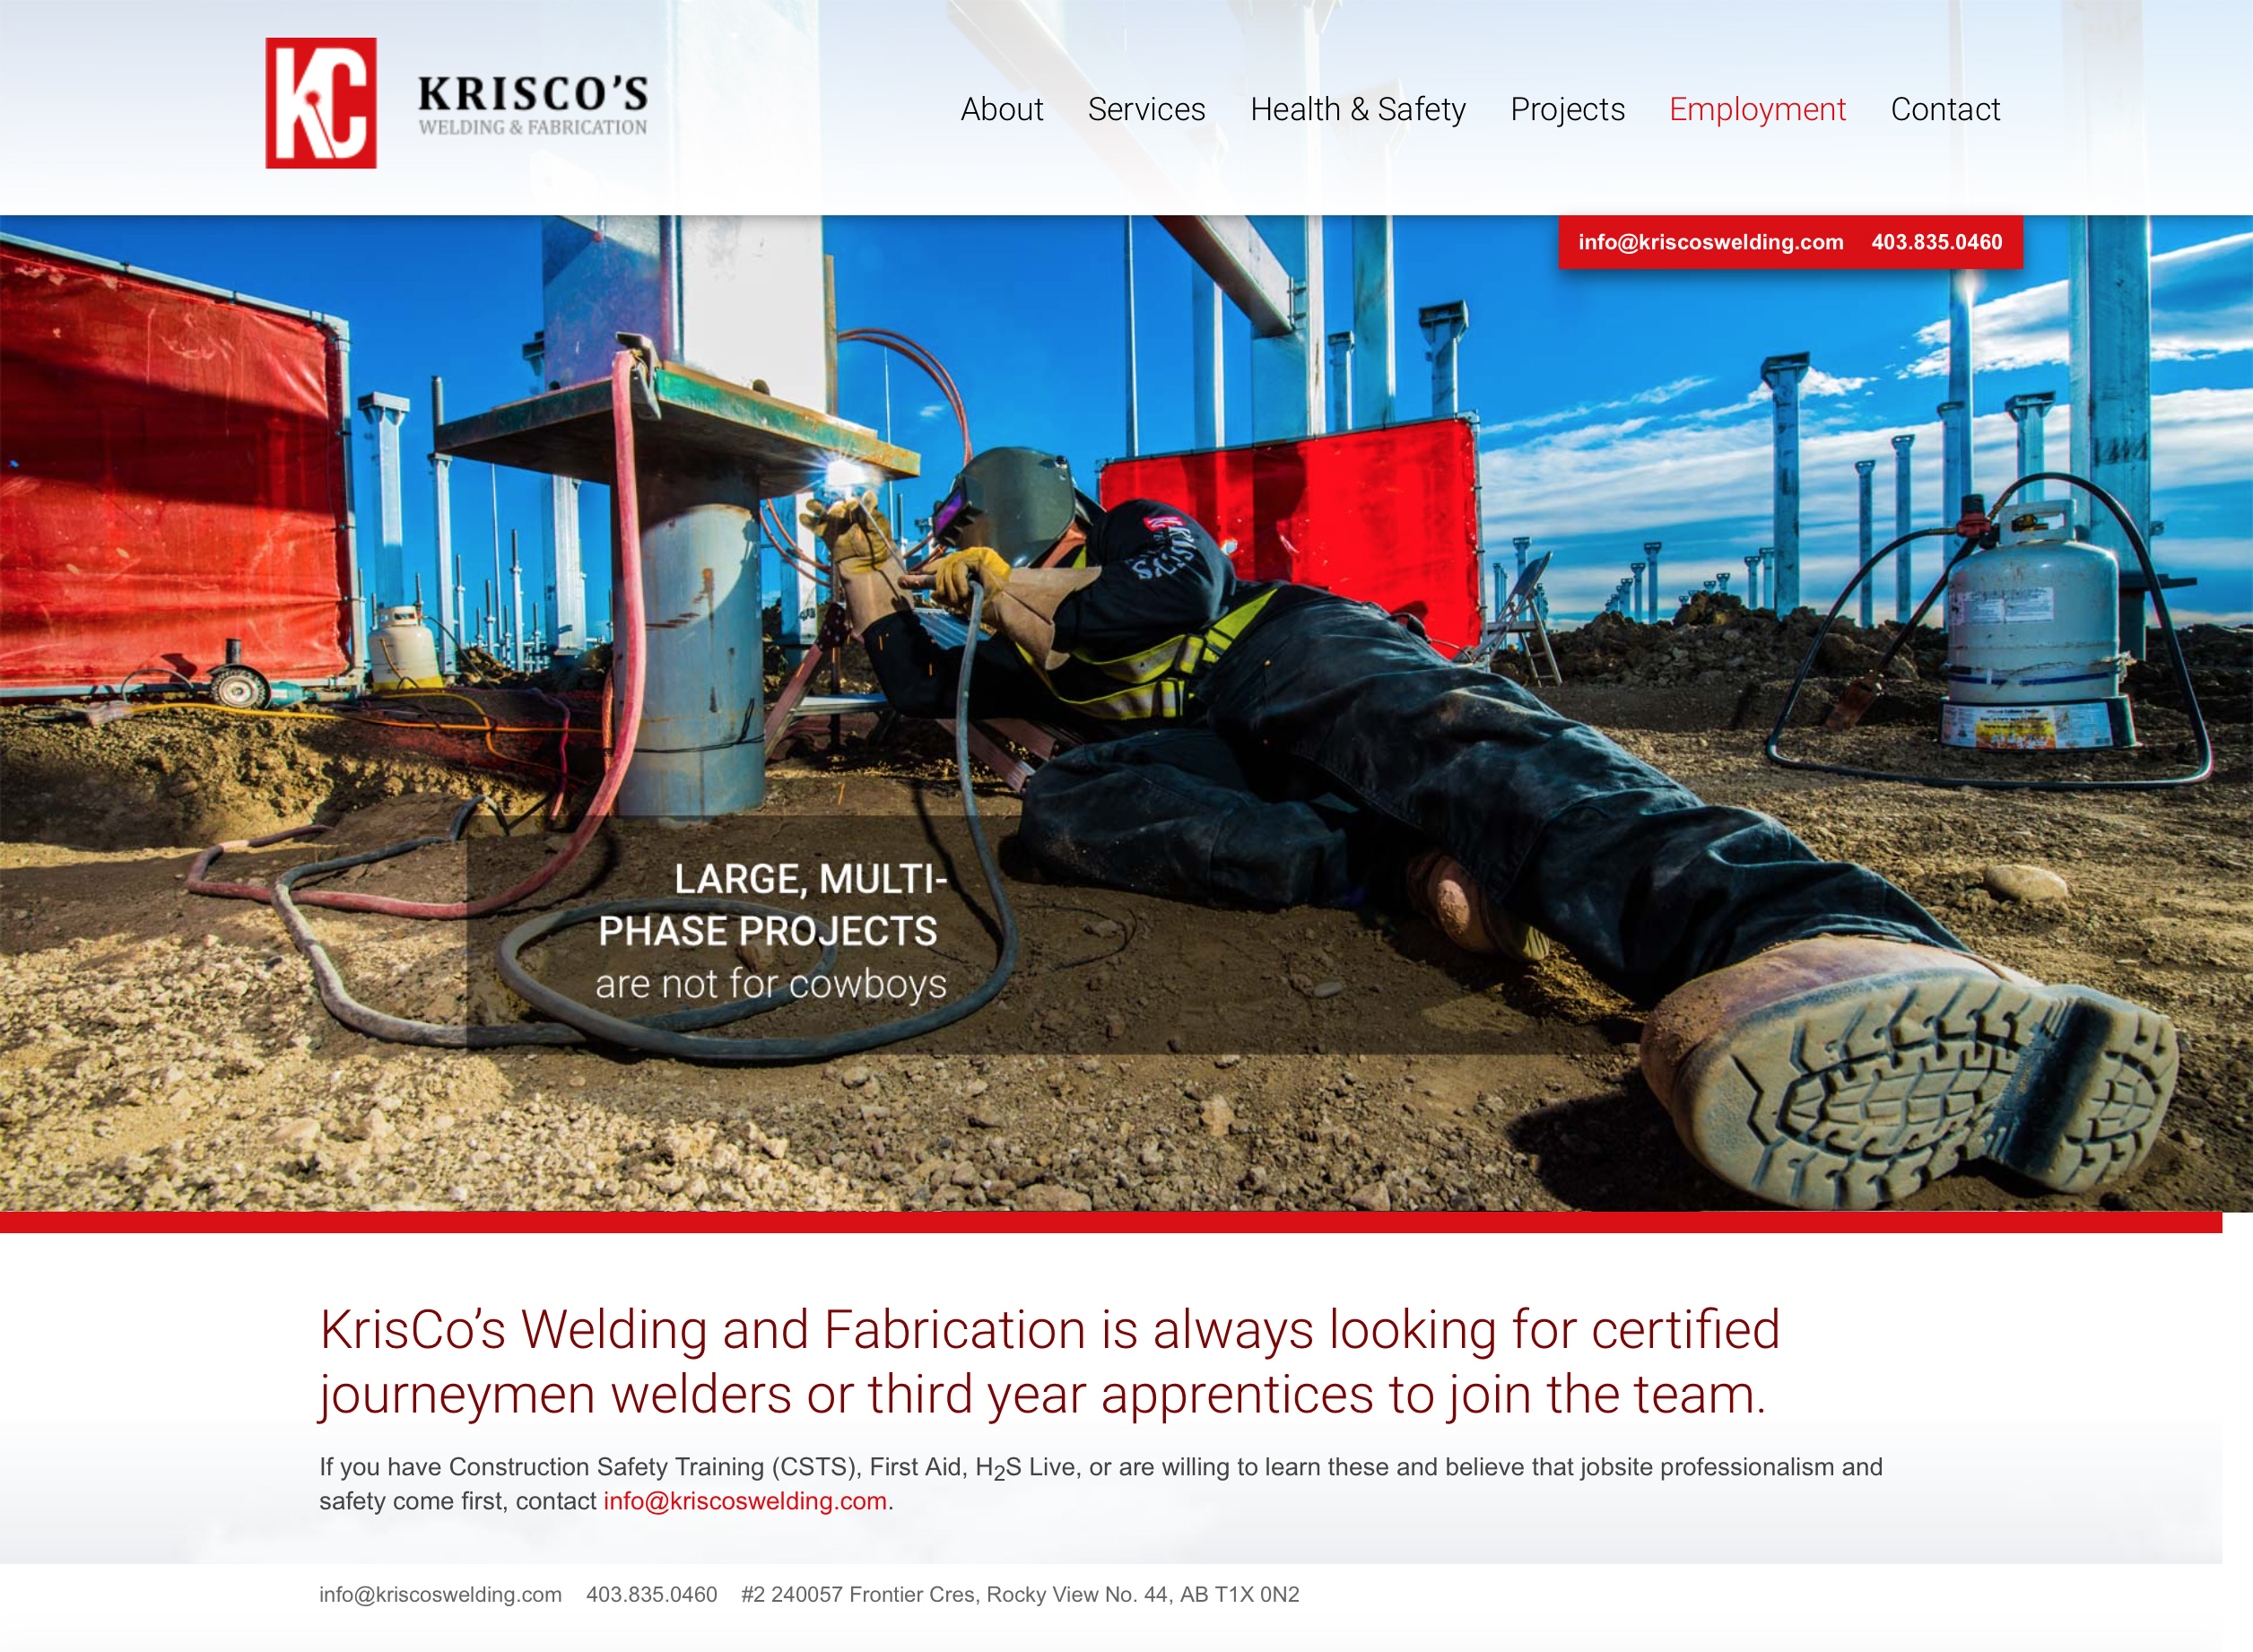 Writing & web development for Krisco's Welding